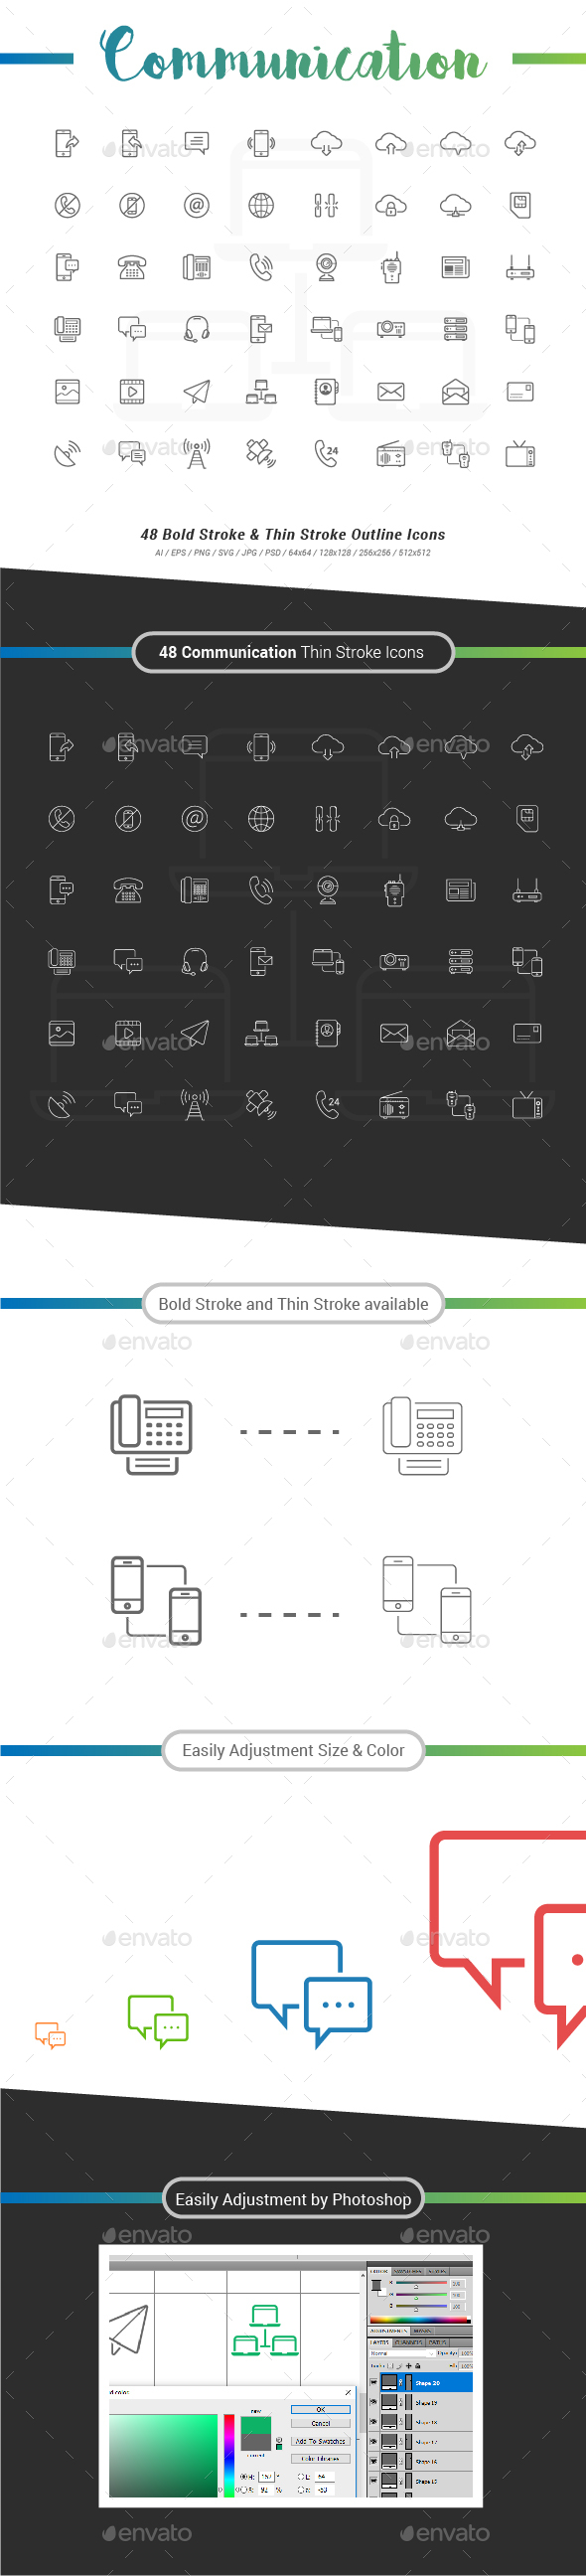 48 Communication Outline Stroke Icon - Technology Icons